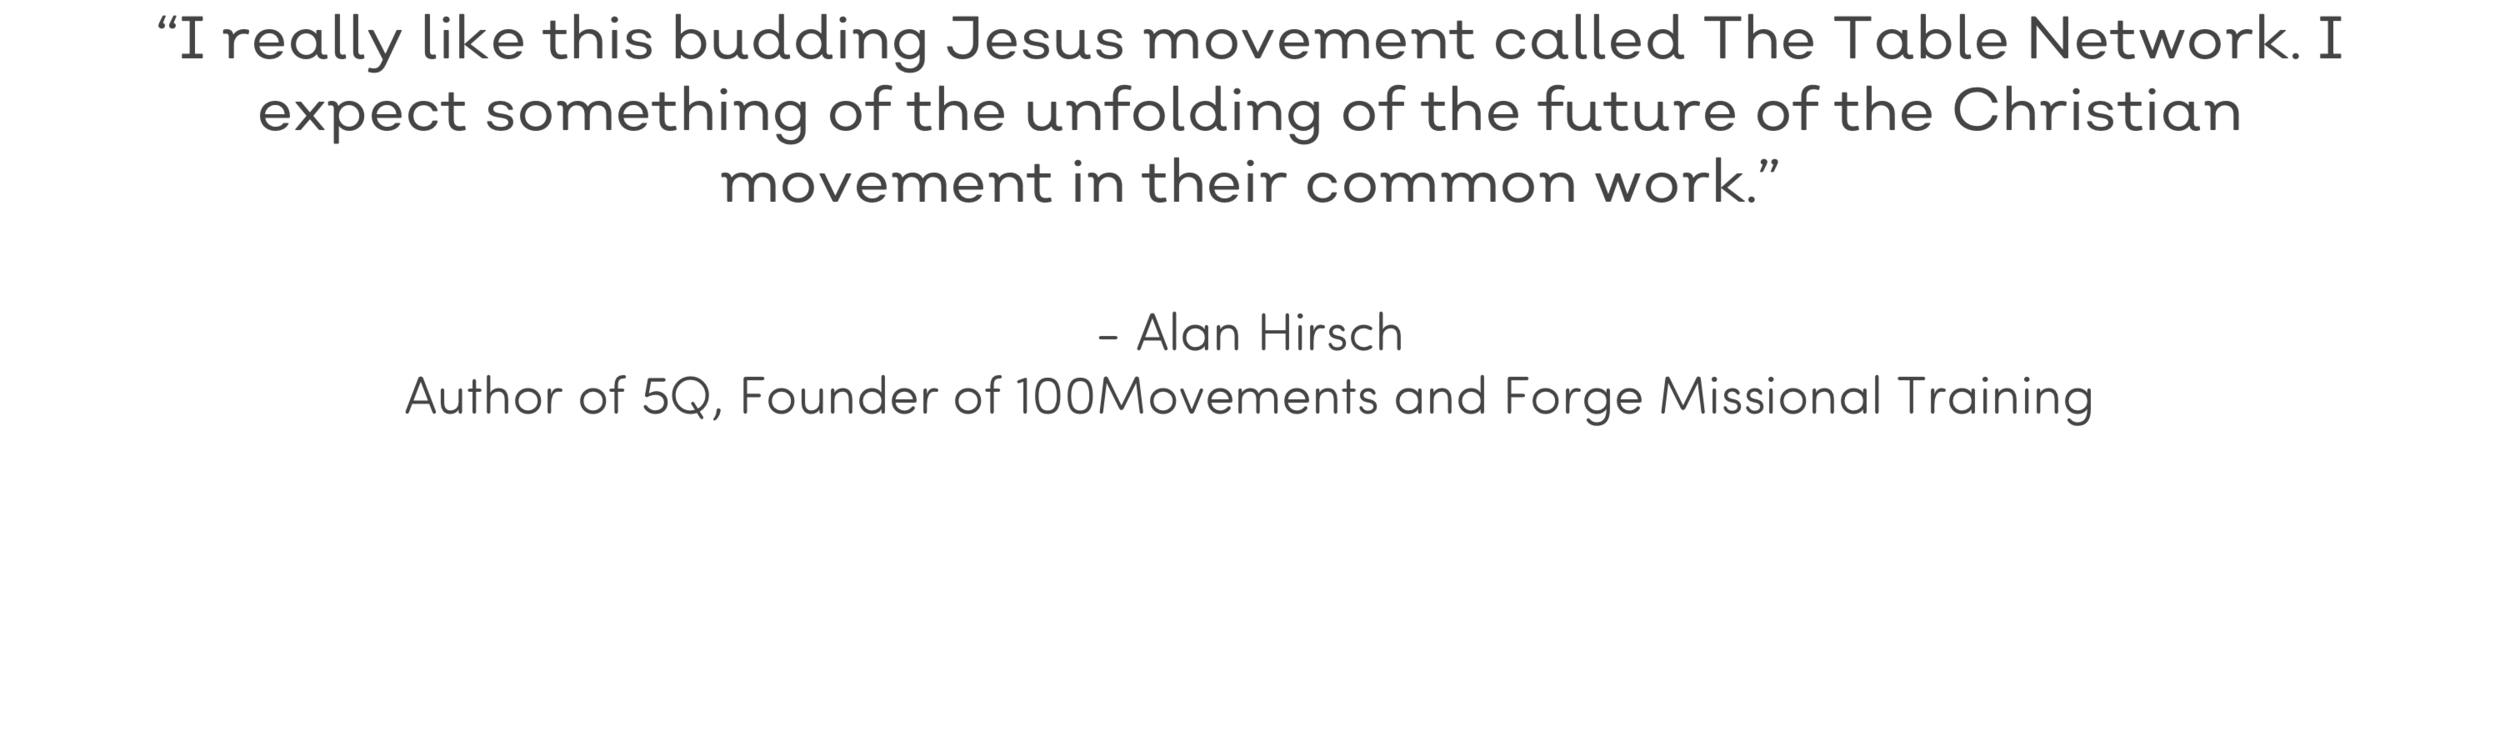 Hirsch Quote 1.png